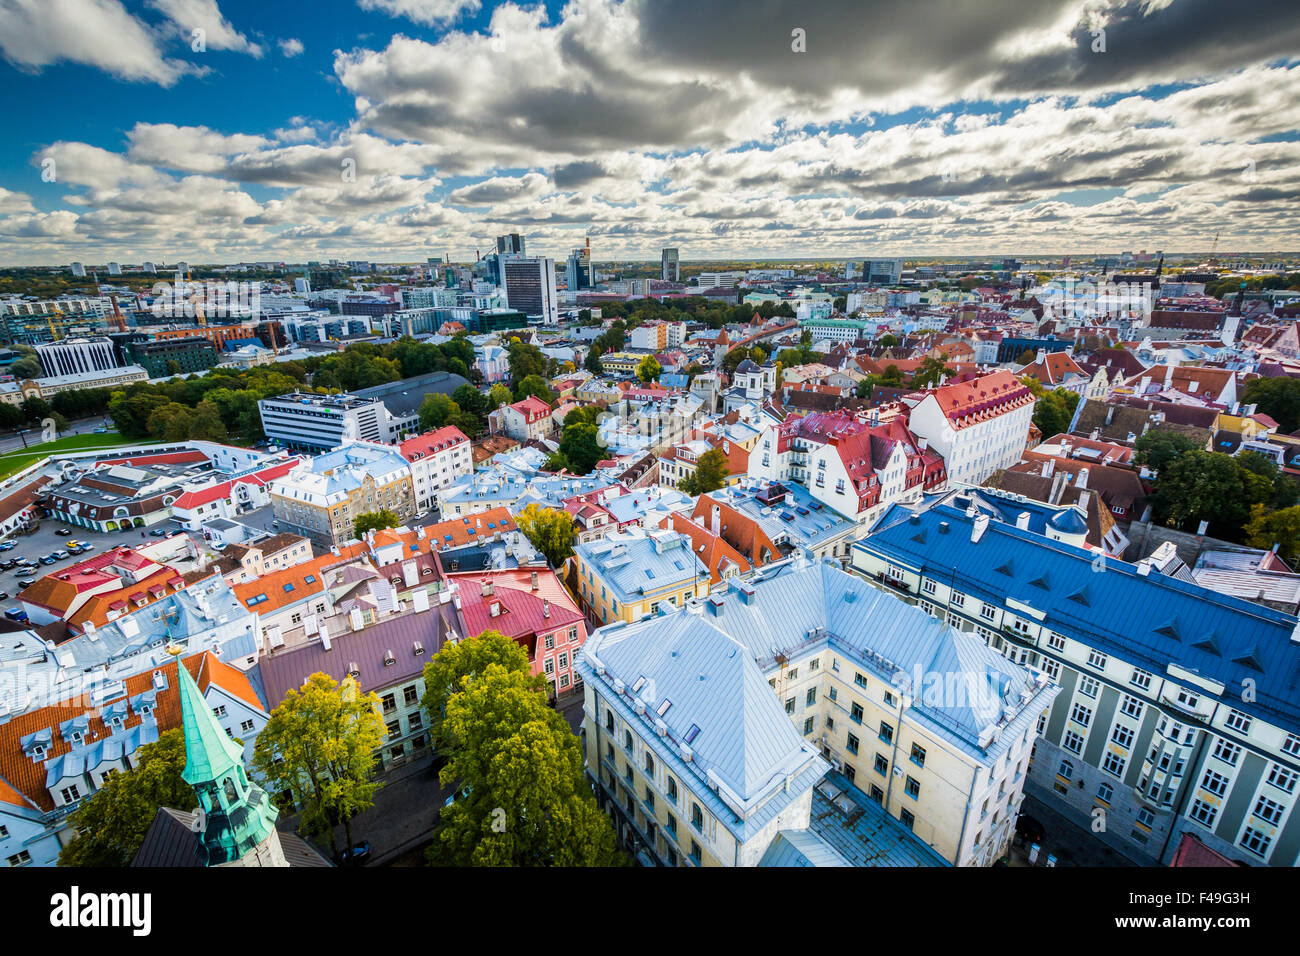 View of the Old Town  from St. Olaf's Church Tower, in Tallinn, Estonia. - Stock Image